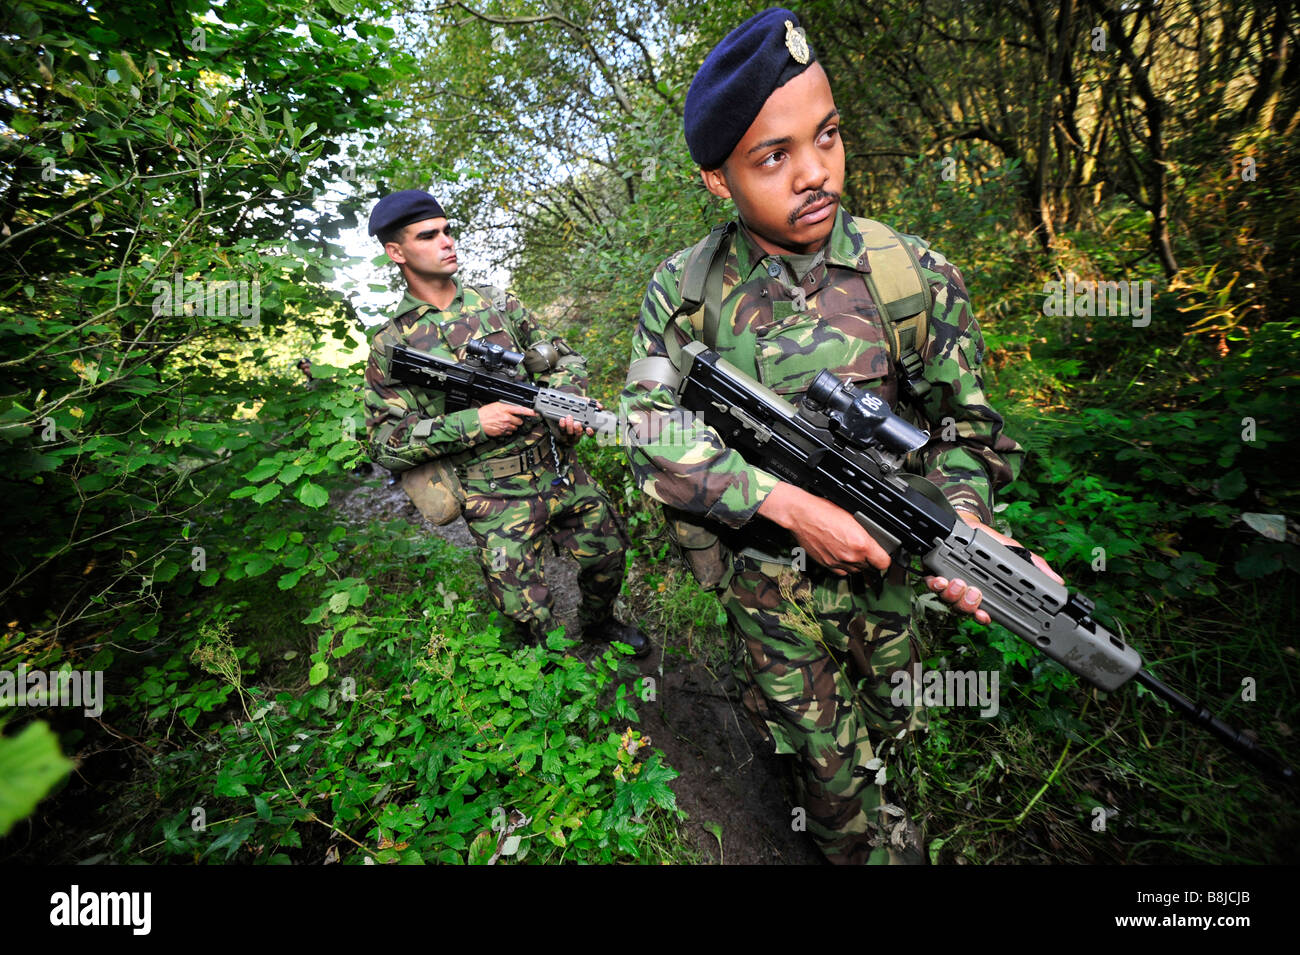 British army soldier training for war - Stock Image